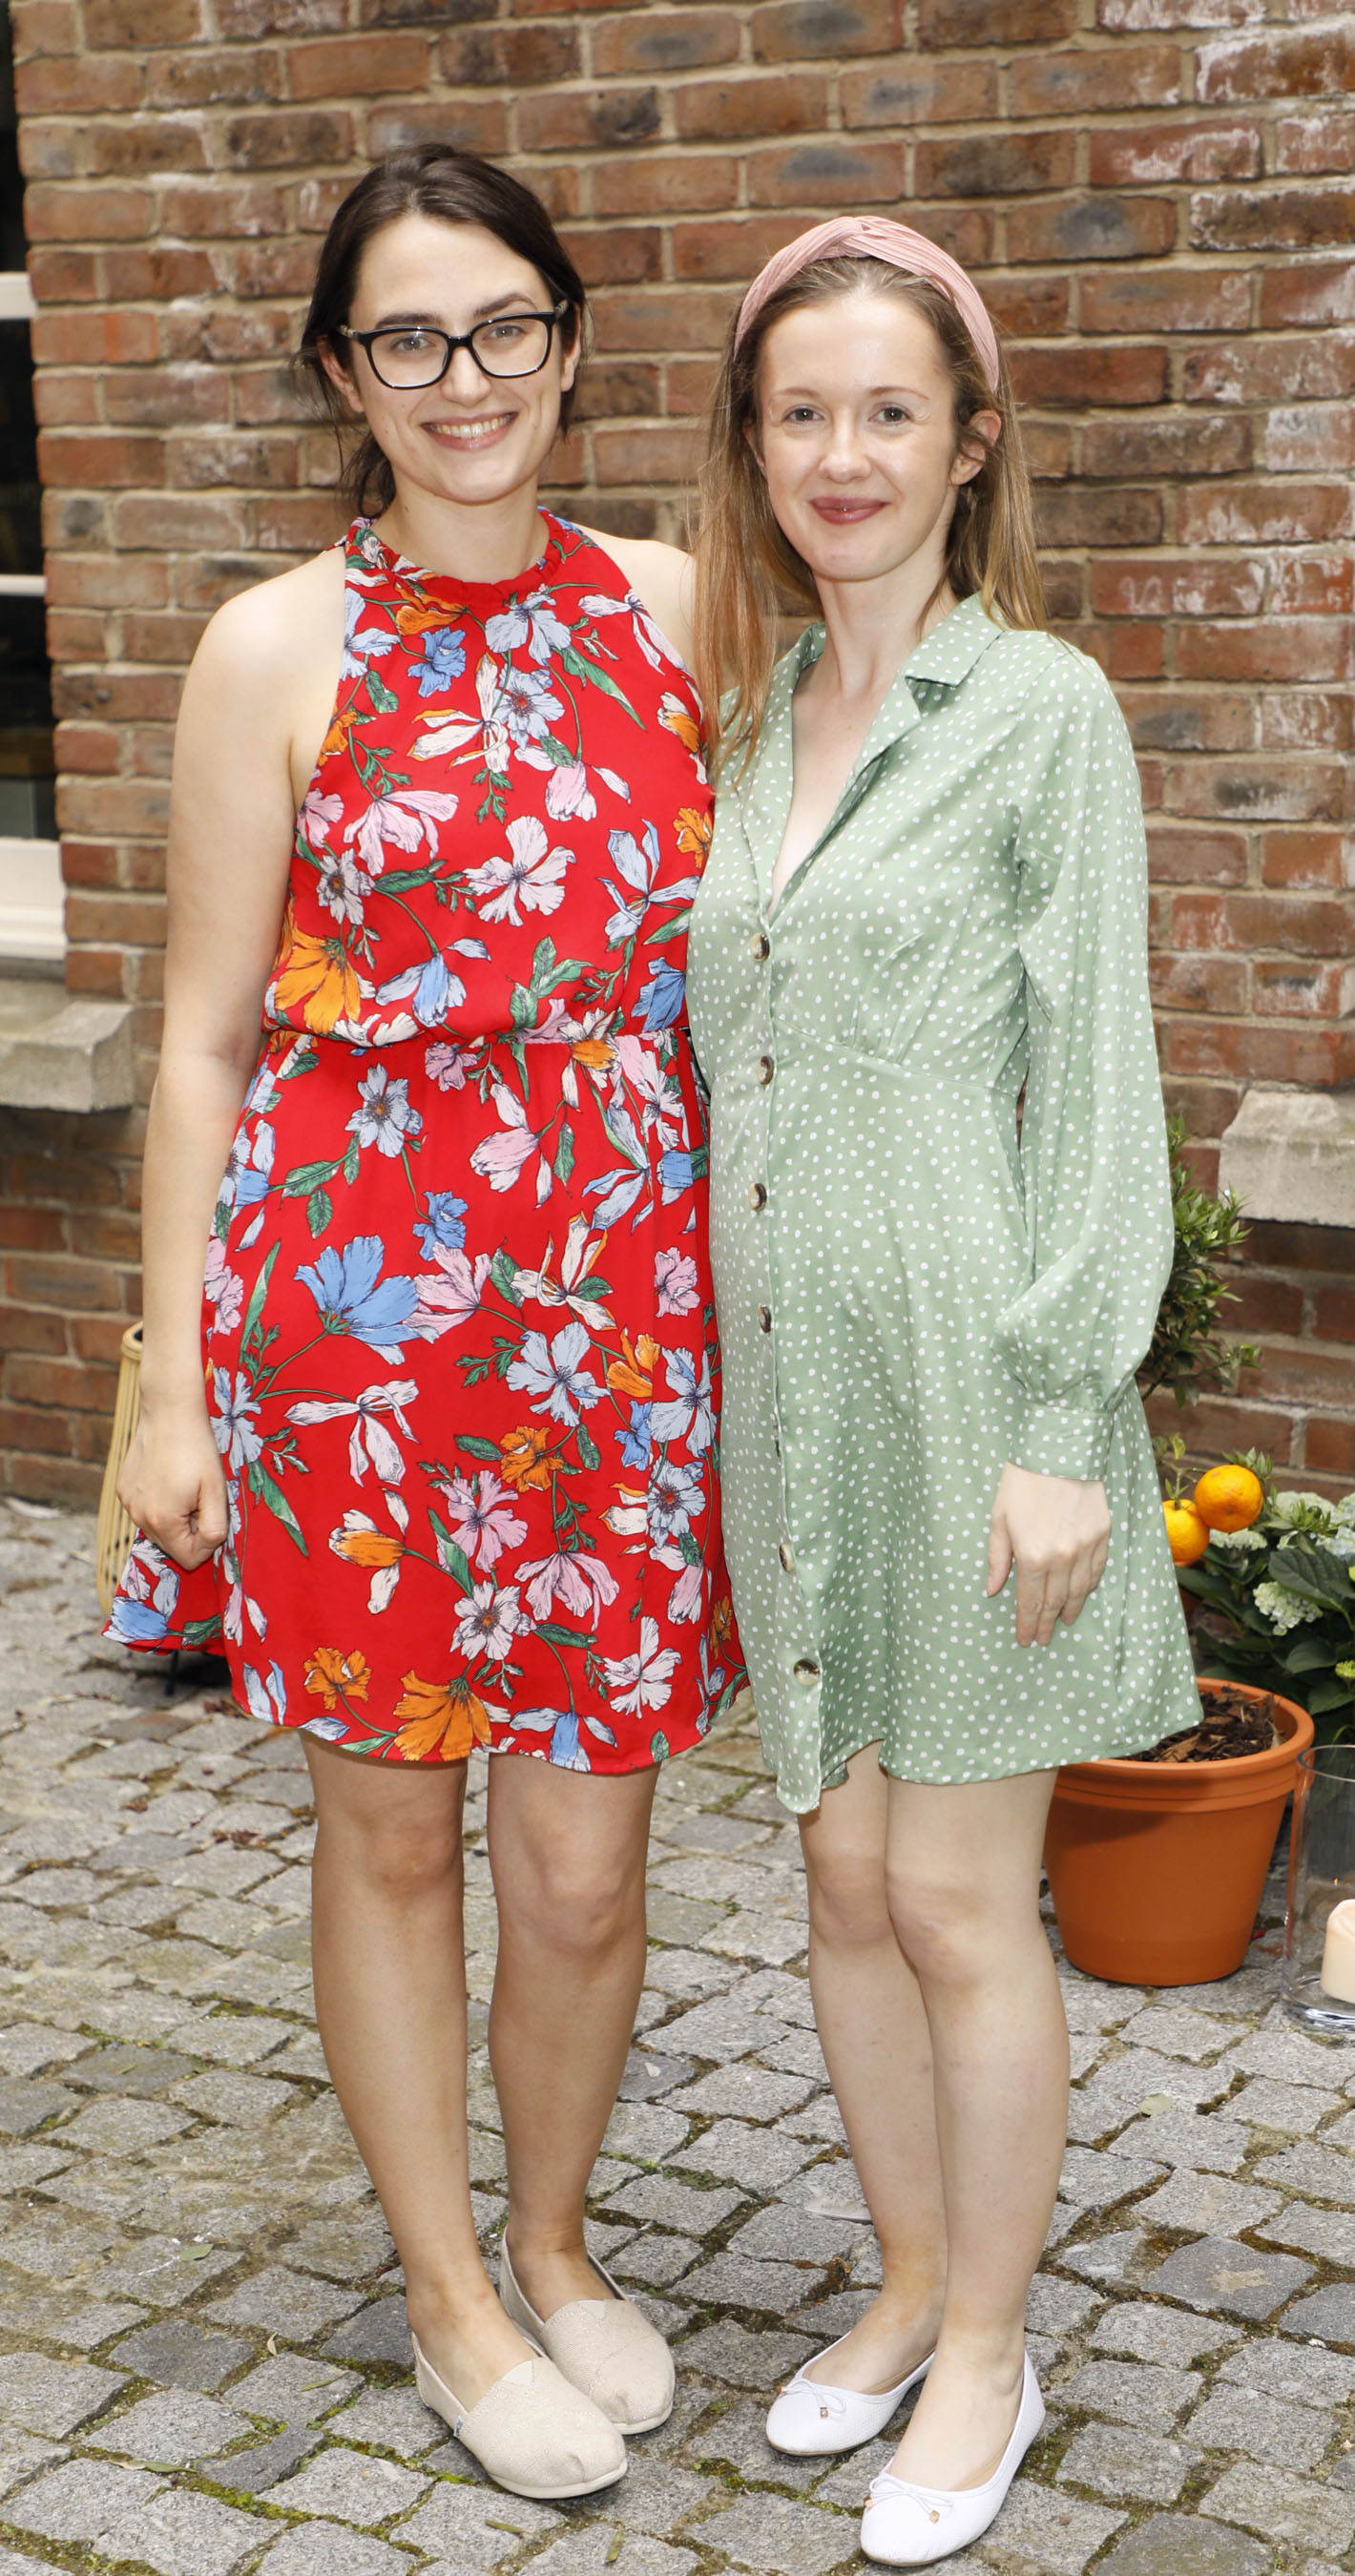 Roisin Healy and Caroline Boland at the Centra 'Wines We Love' event in Dublin. Photo: Kieran Harnett